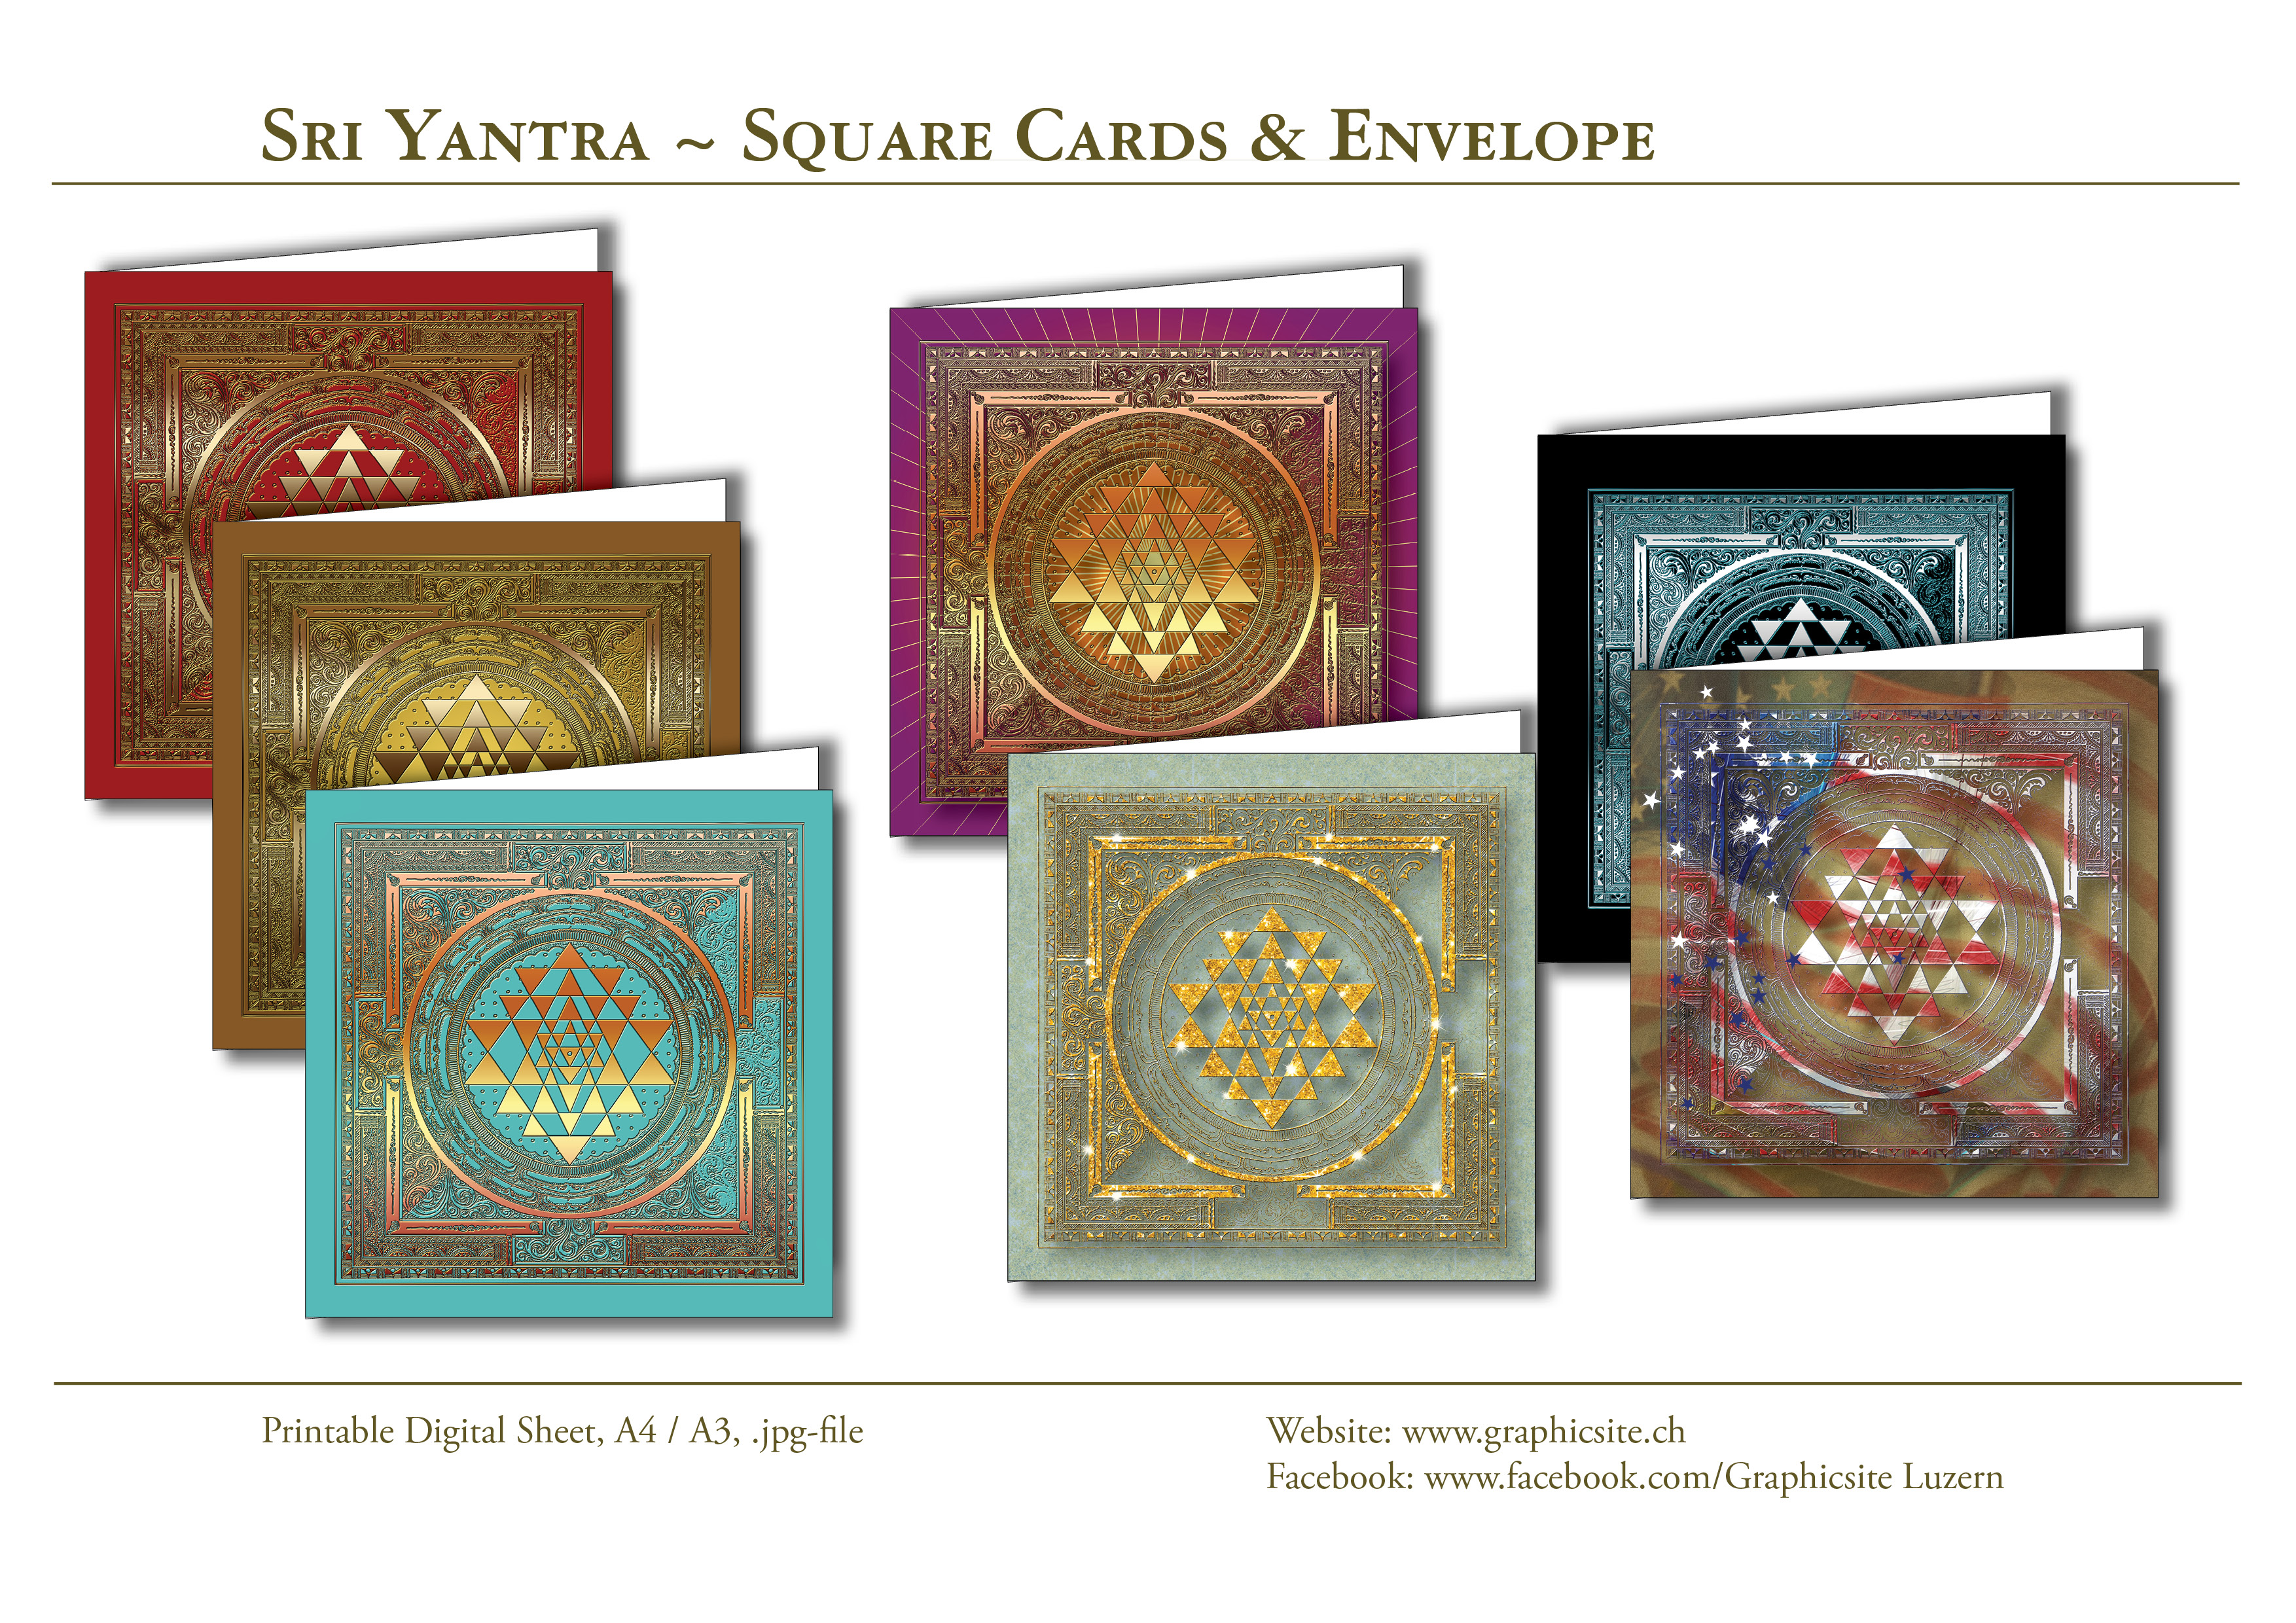 Sri Yantra - Card Collection - Square Cards - Envelope, Stationary, Greeting Cards, Yoga, Meditation, India, Hinduism, Graphic Design Luzern, Grafiker Luzern,